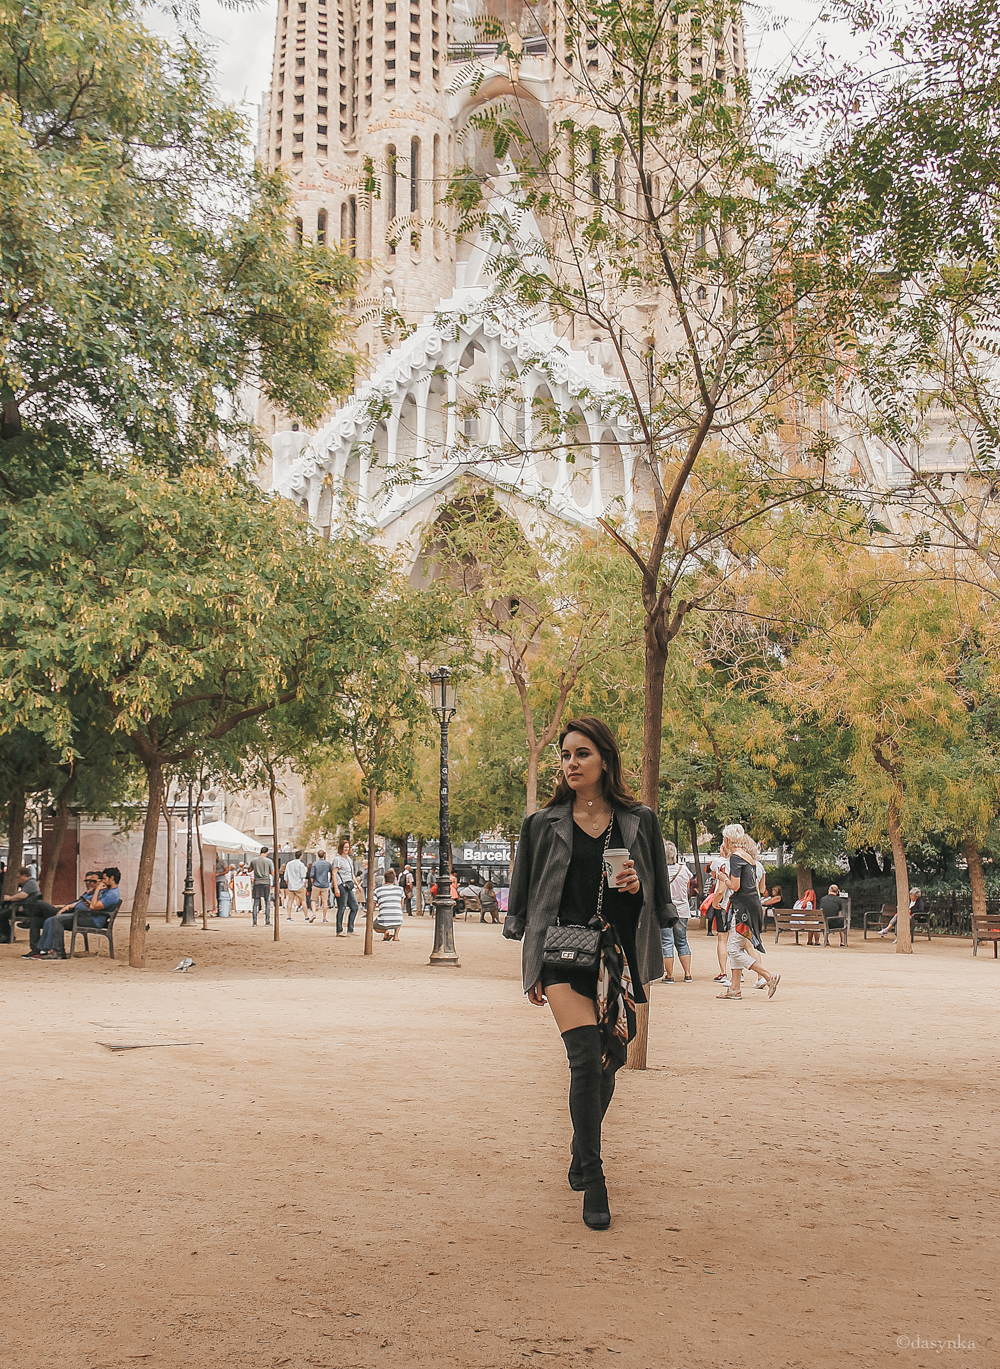 dasynka-fashion-blog-blogger-influencer-inspiration-shooting-model-globettrotter-travel-girl-lookbook-instagram-long-hair-street-style-casual-italy-lifestyle-outfit-look-poses-barcelona-sagrada-familia-gucci-belt-overknee-boots--grey-black-hm-asos-zara-blazer-jacket-grey-pinstripe-chanel-bag-foulard-hermes-starbucks-frappuccino-cappuccino-inspo-traveling-spain